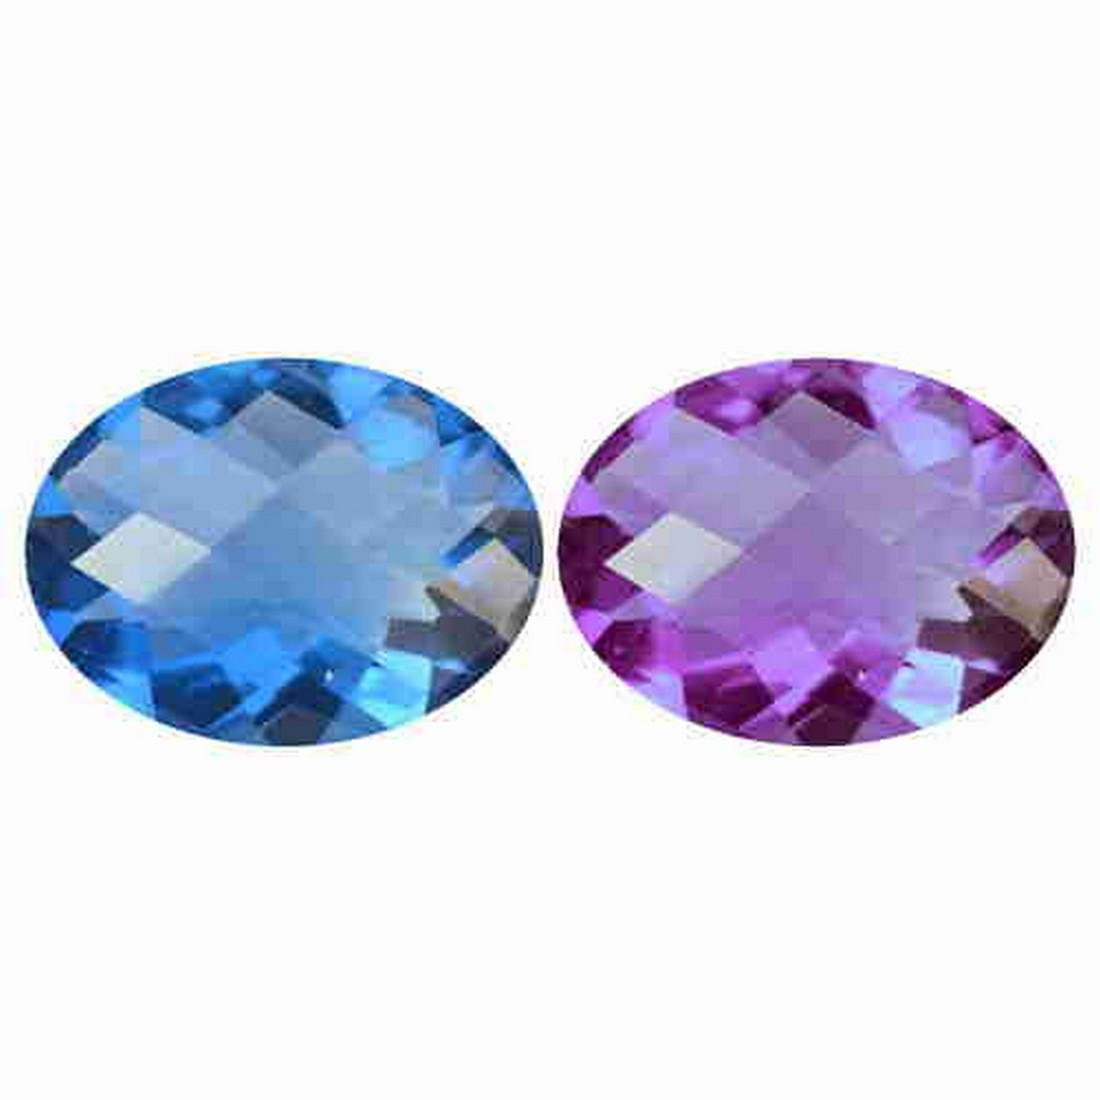 8.81 ct natural color change fluorite